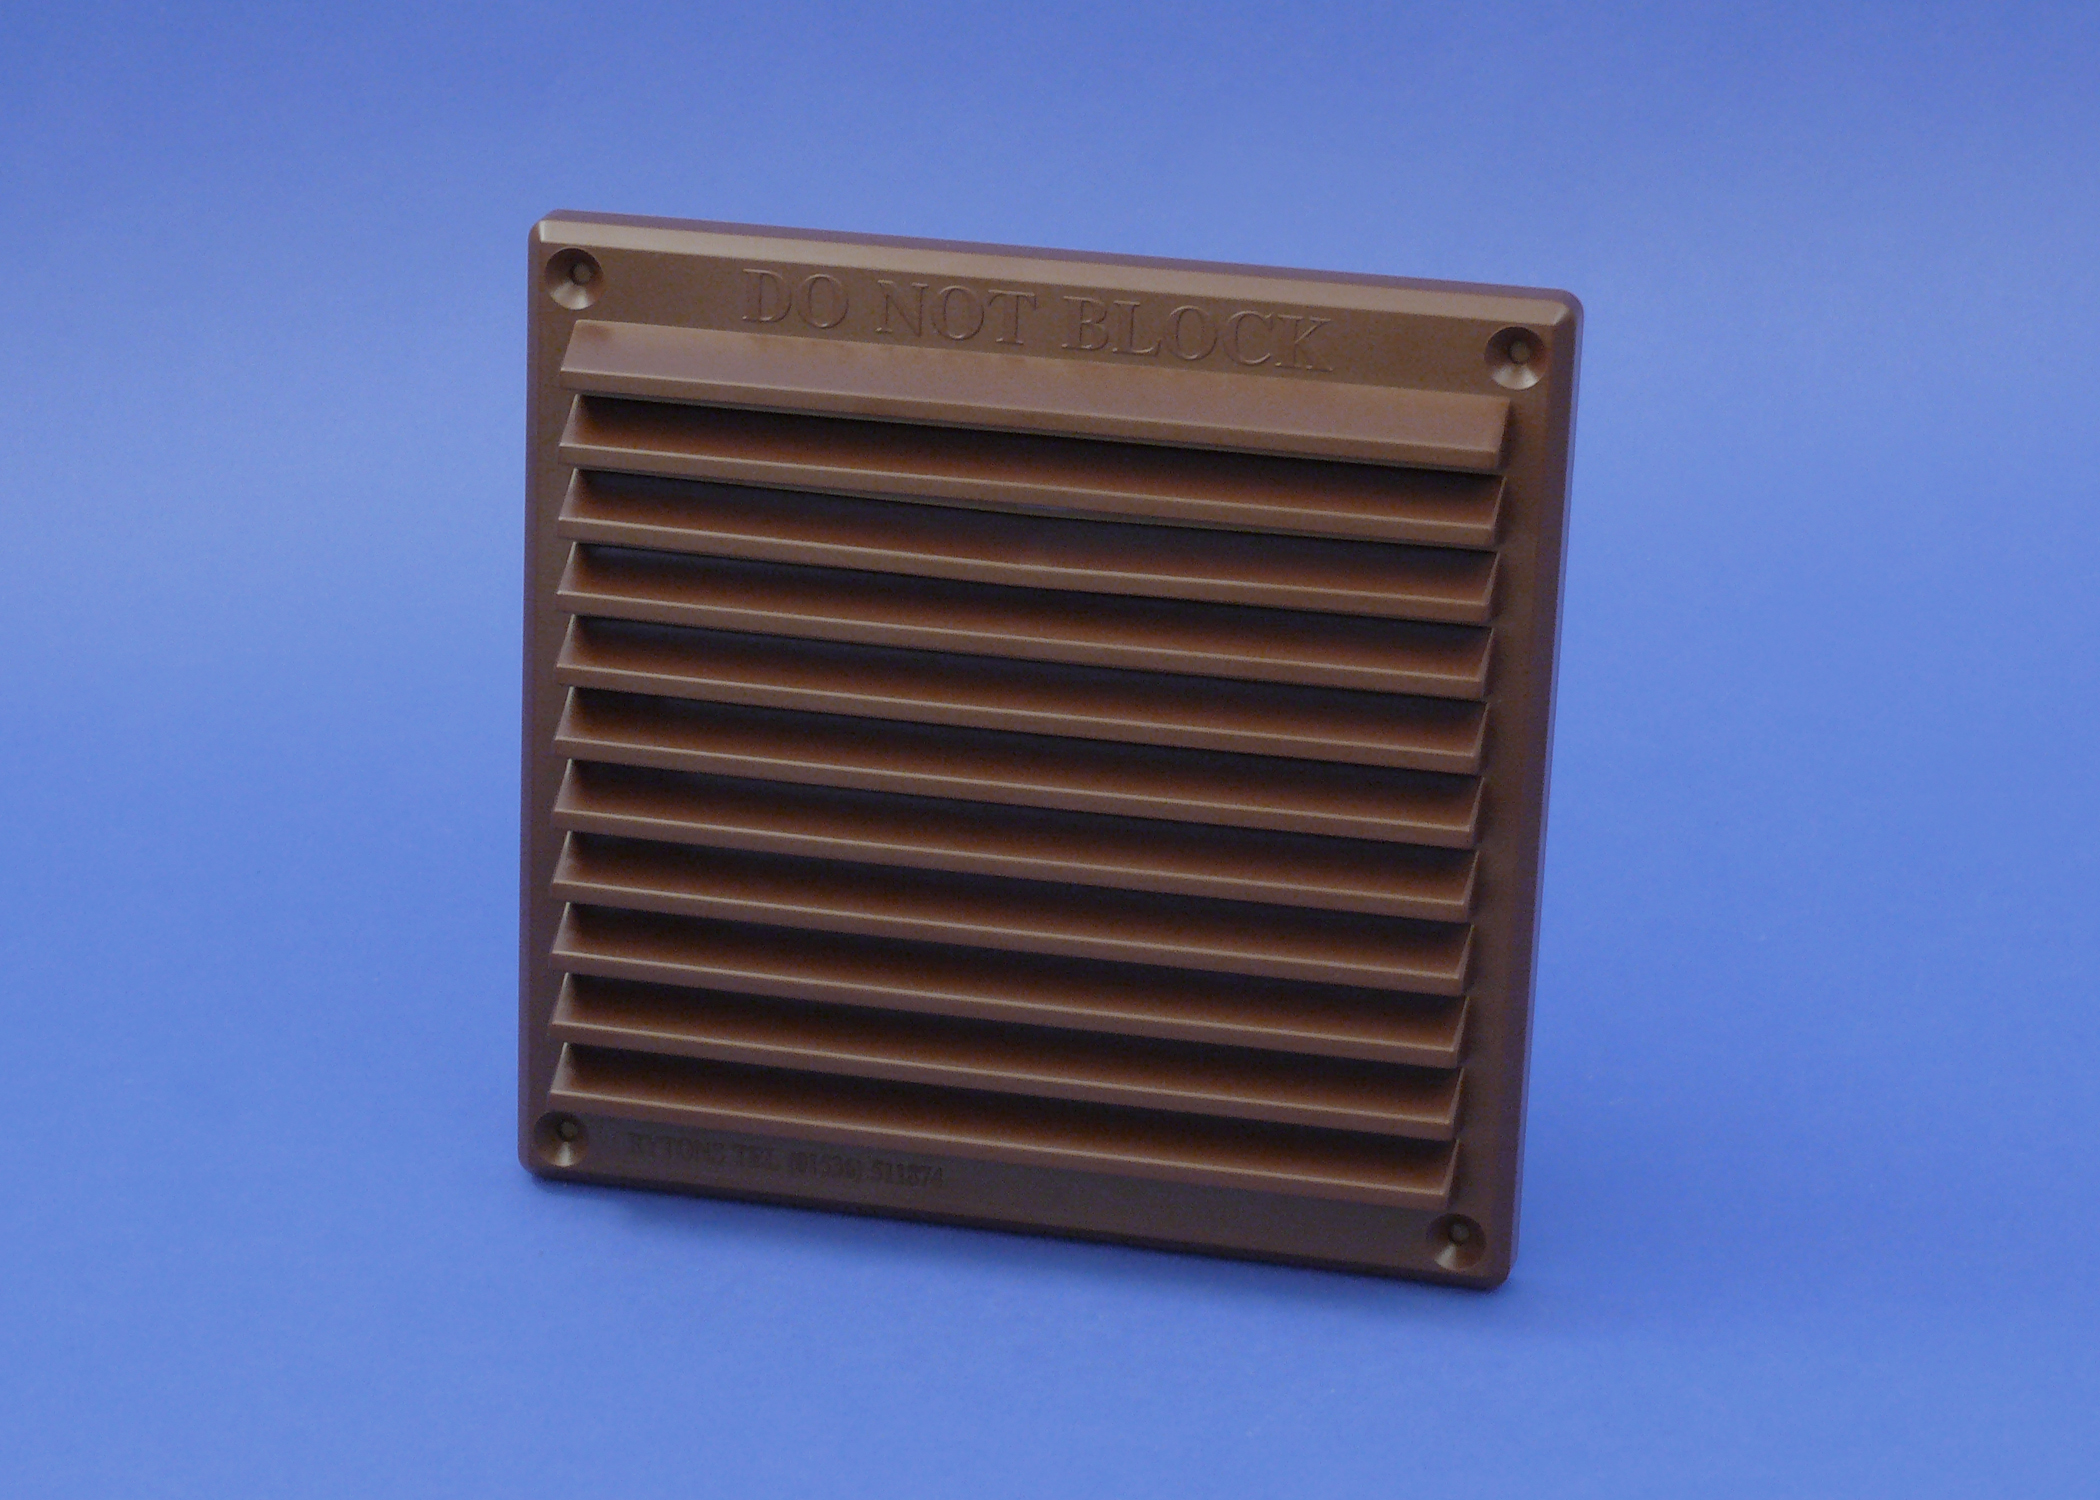 RYTONS 6X6 LOUVRE VENTILATION GRILLE - BROWN